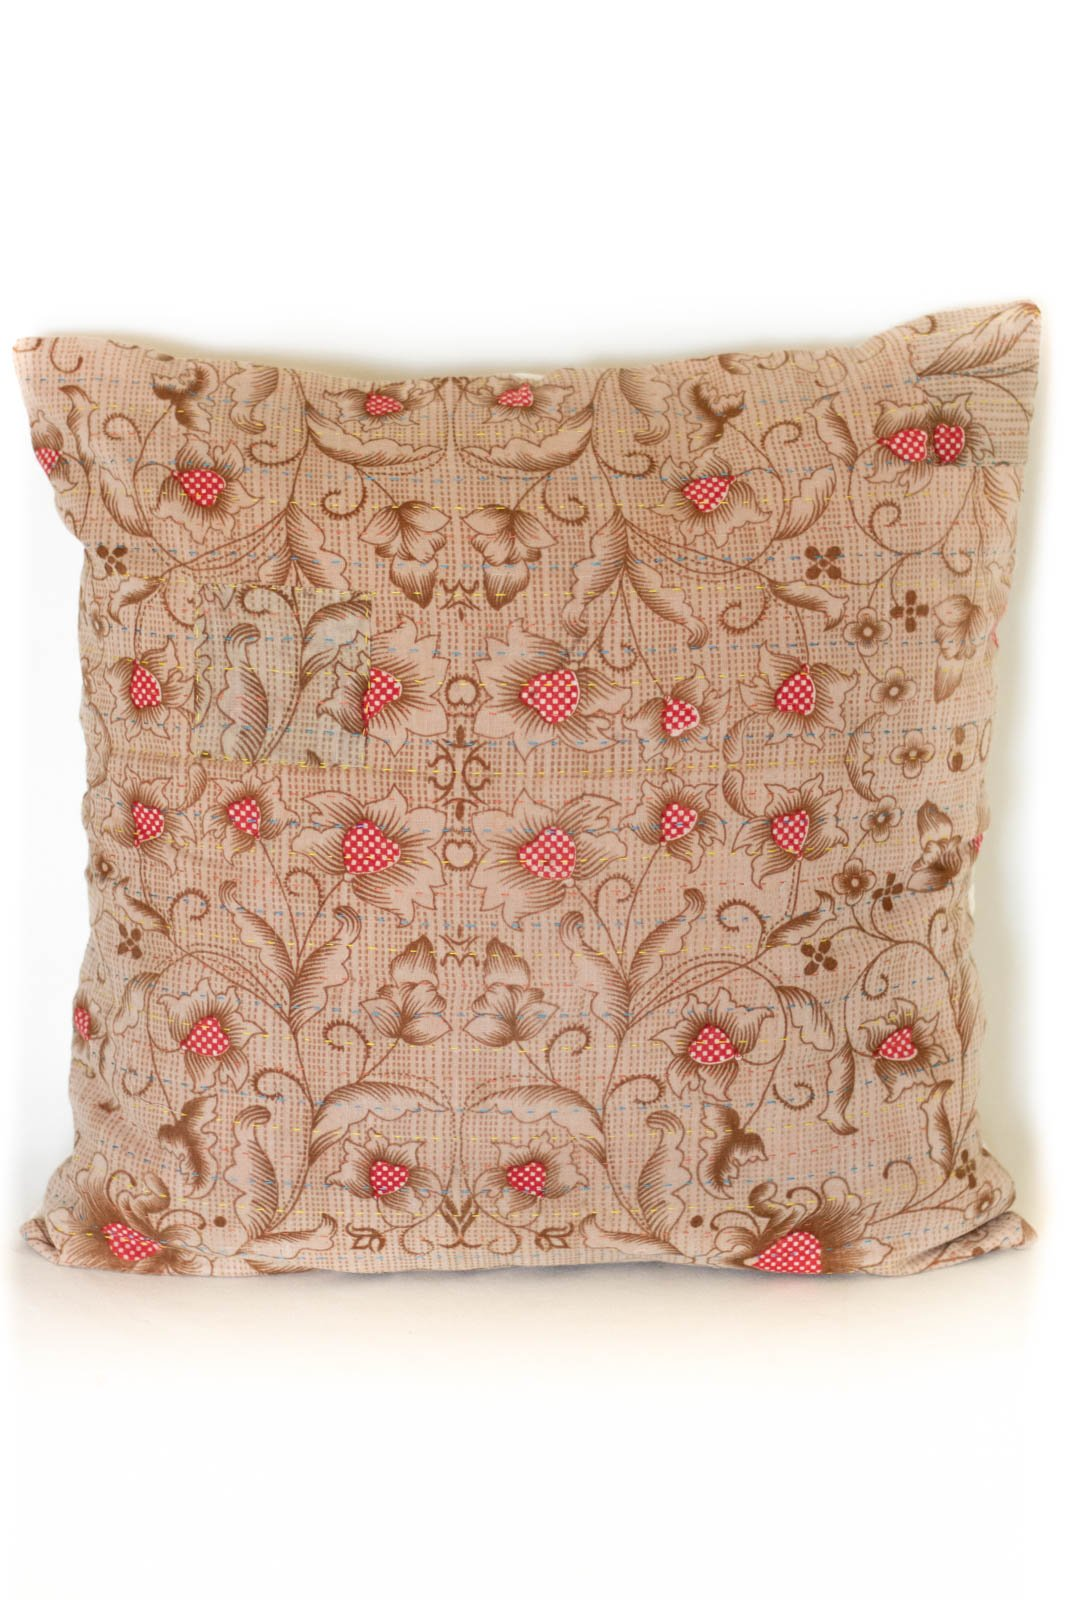 Intricate no. 9 Kantha Pillow Cover